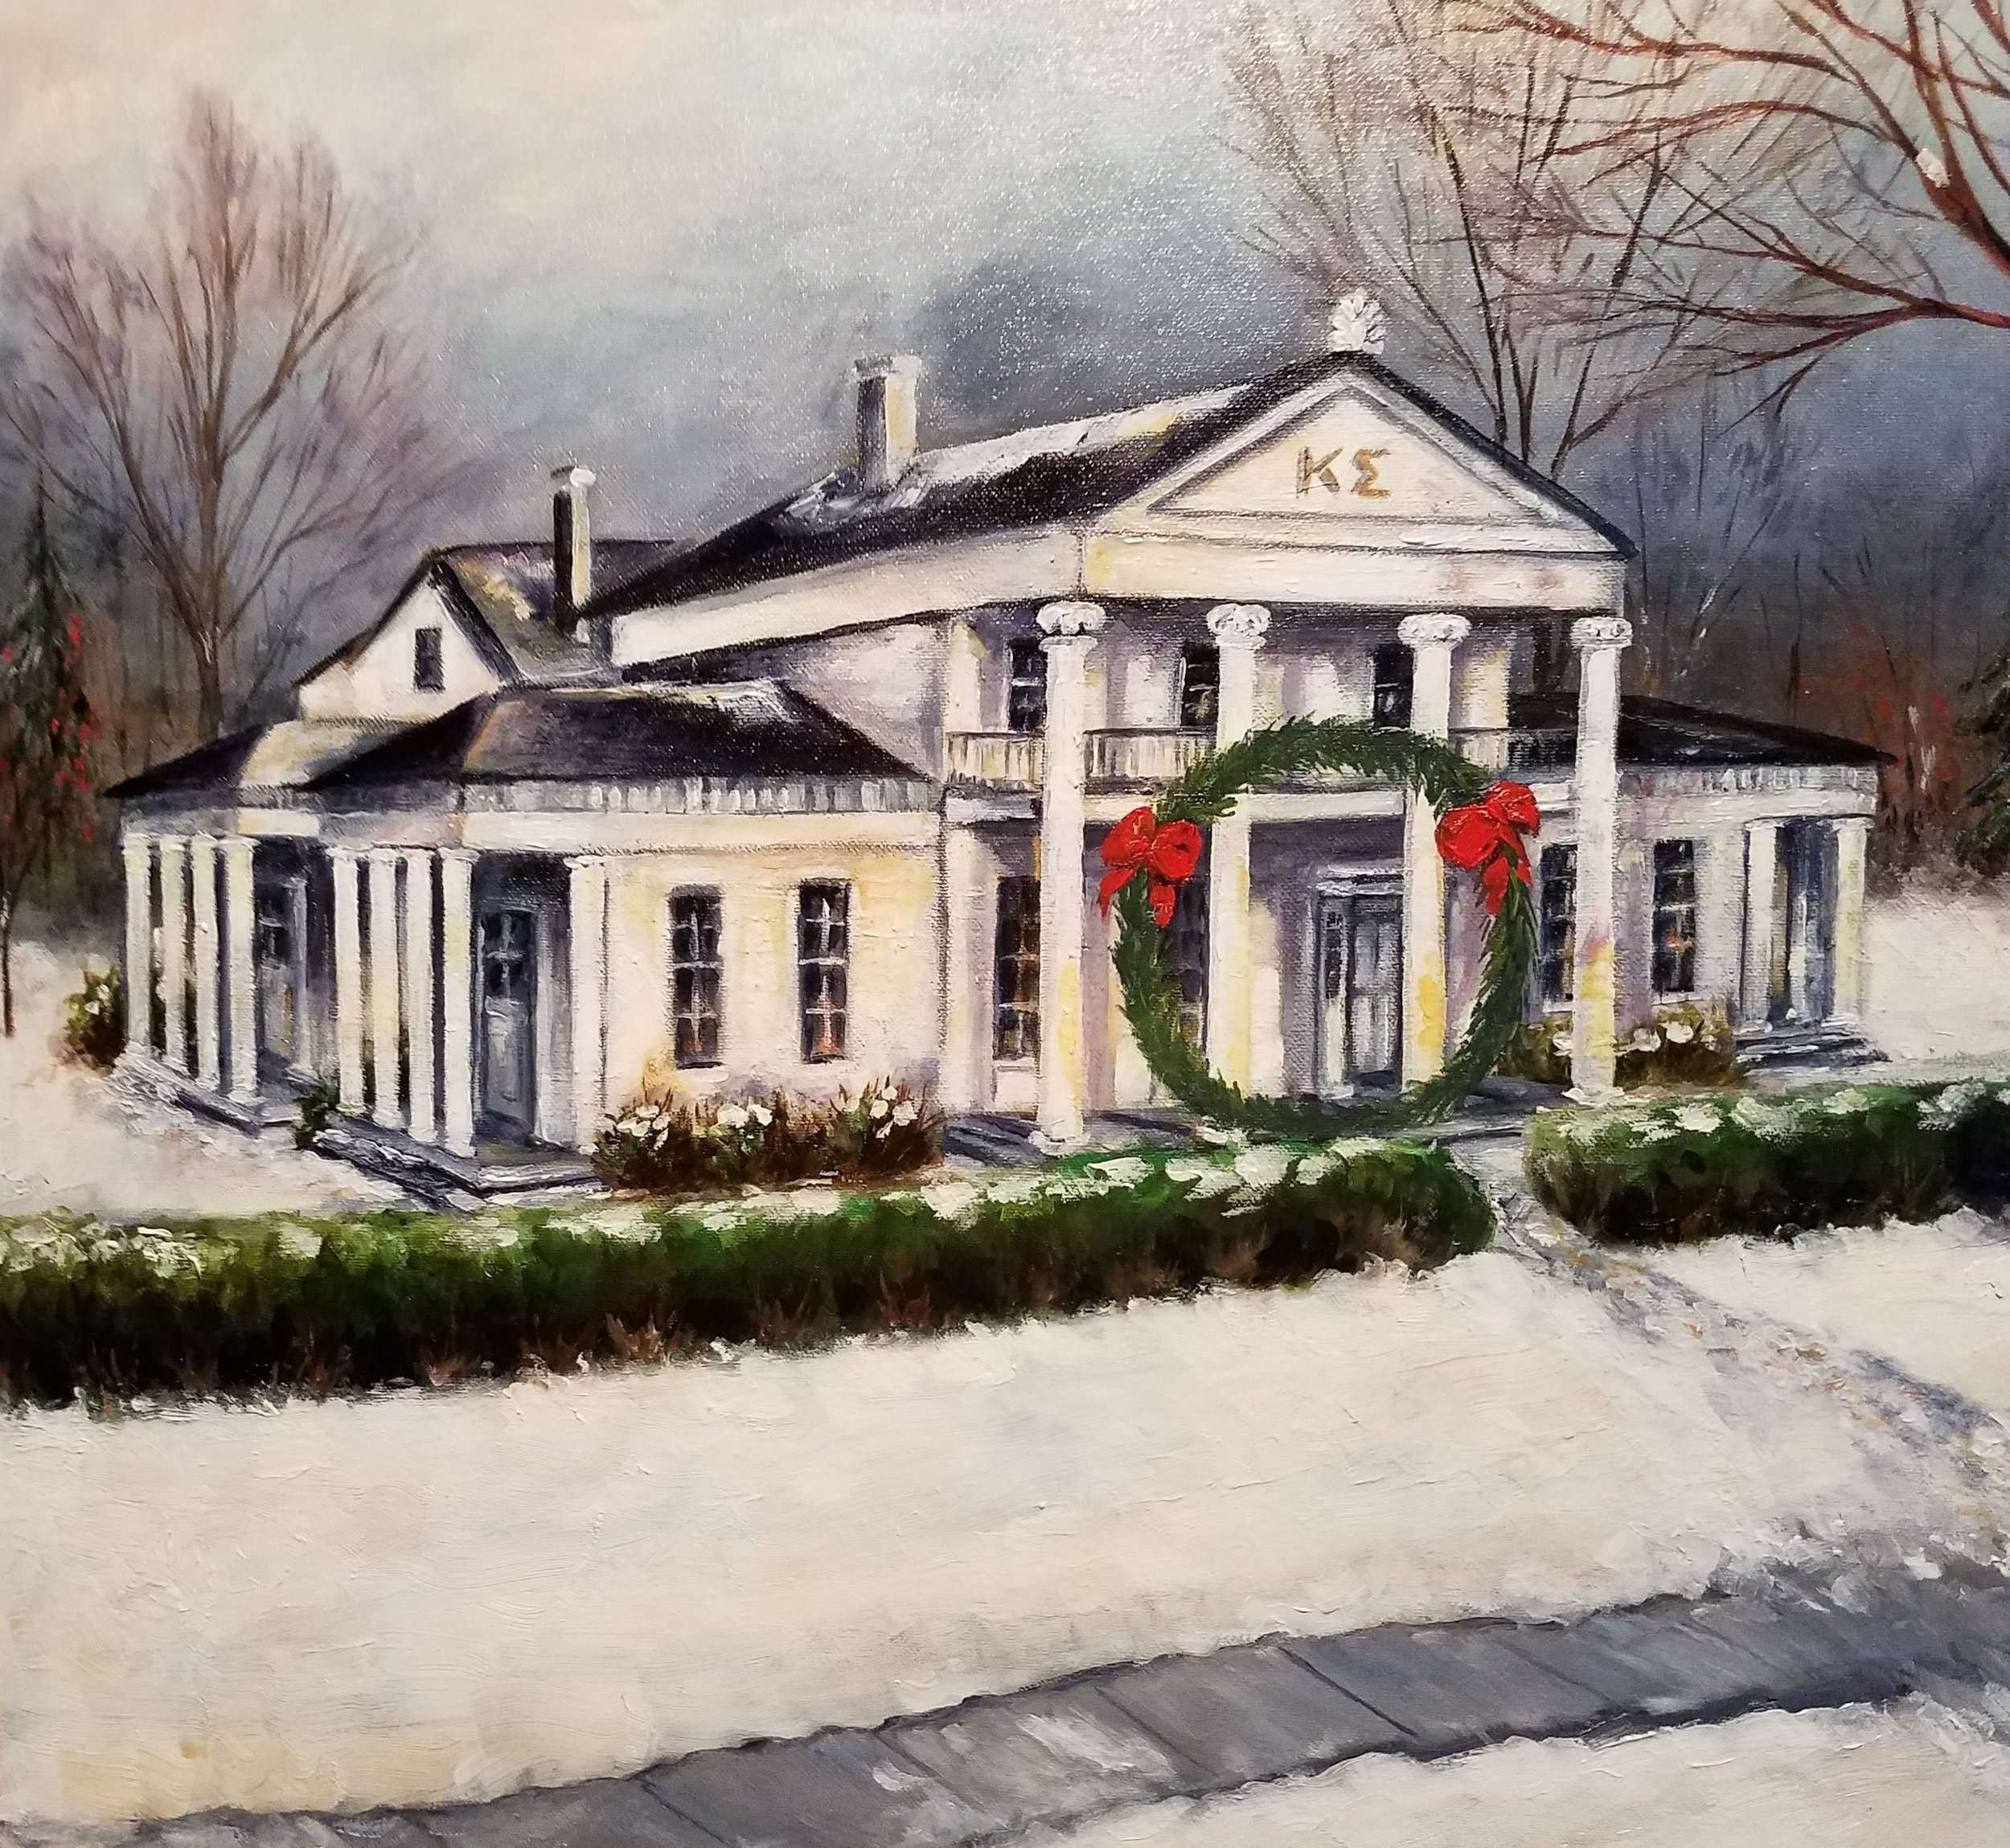 A large Christmas wreath mounted on what was once the second story porch was the brainchild of Harlamert to send holiday greetings to the community. His wife, Barbara, later depicted it in a painting. --- photo courtesy of Harlamert